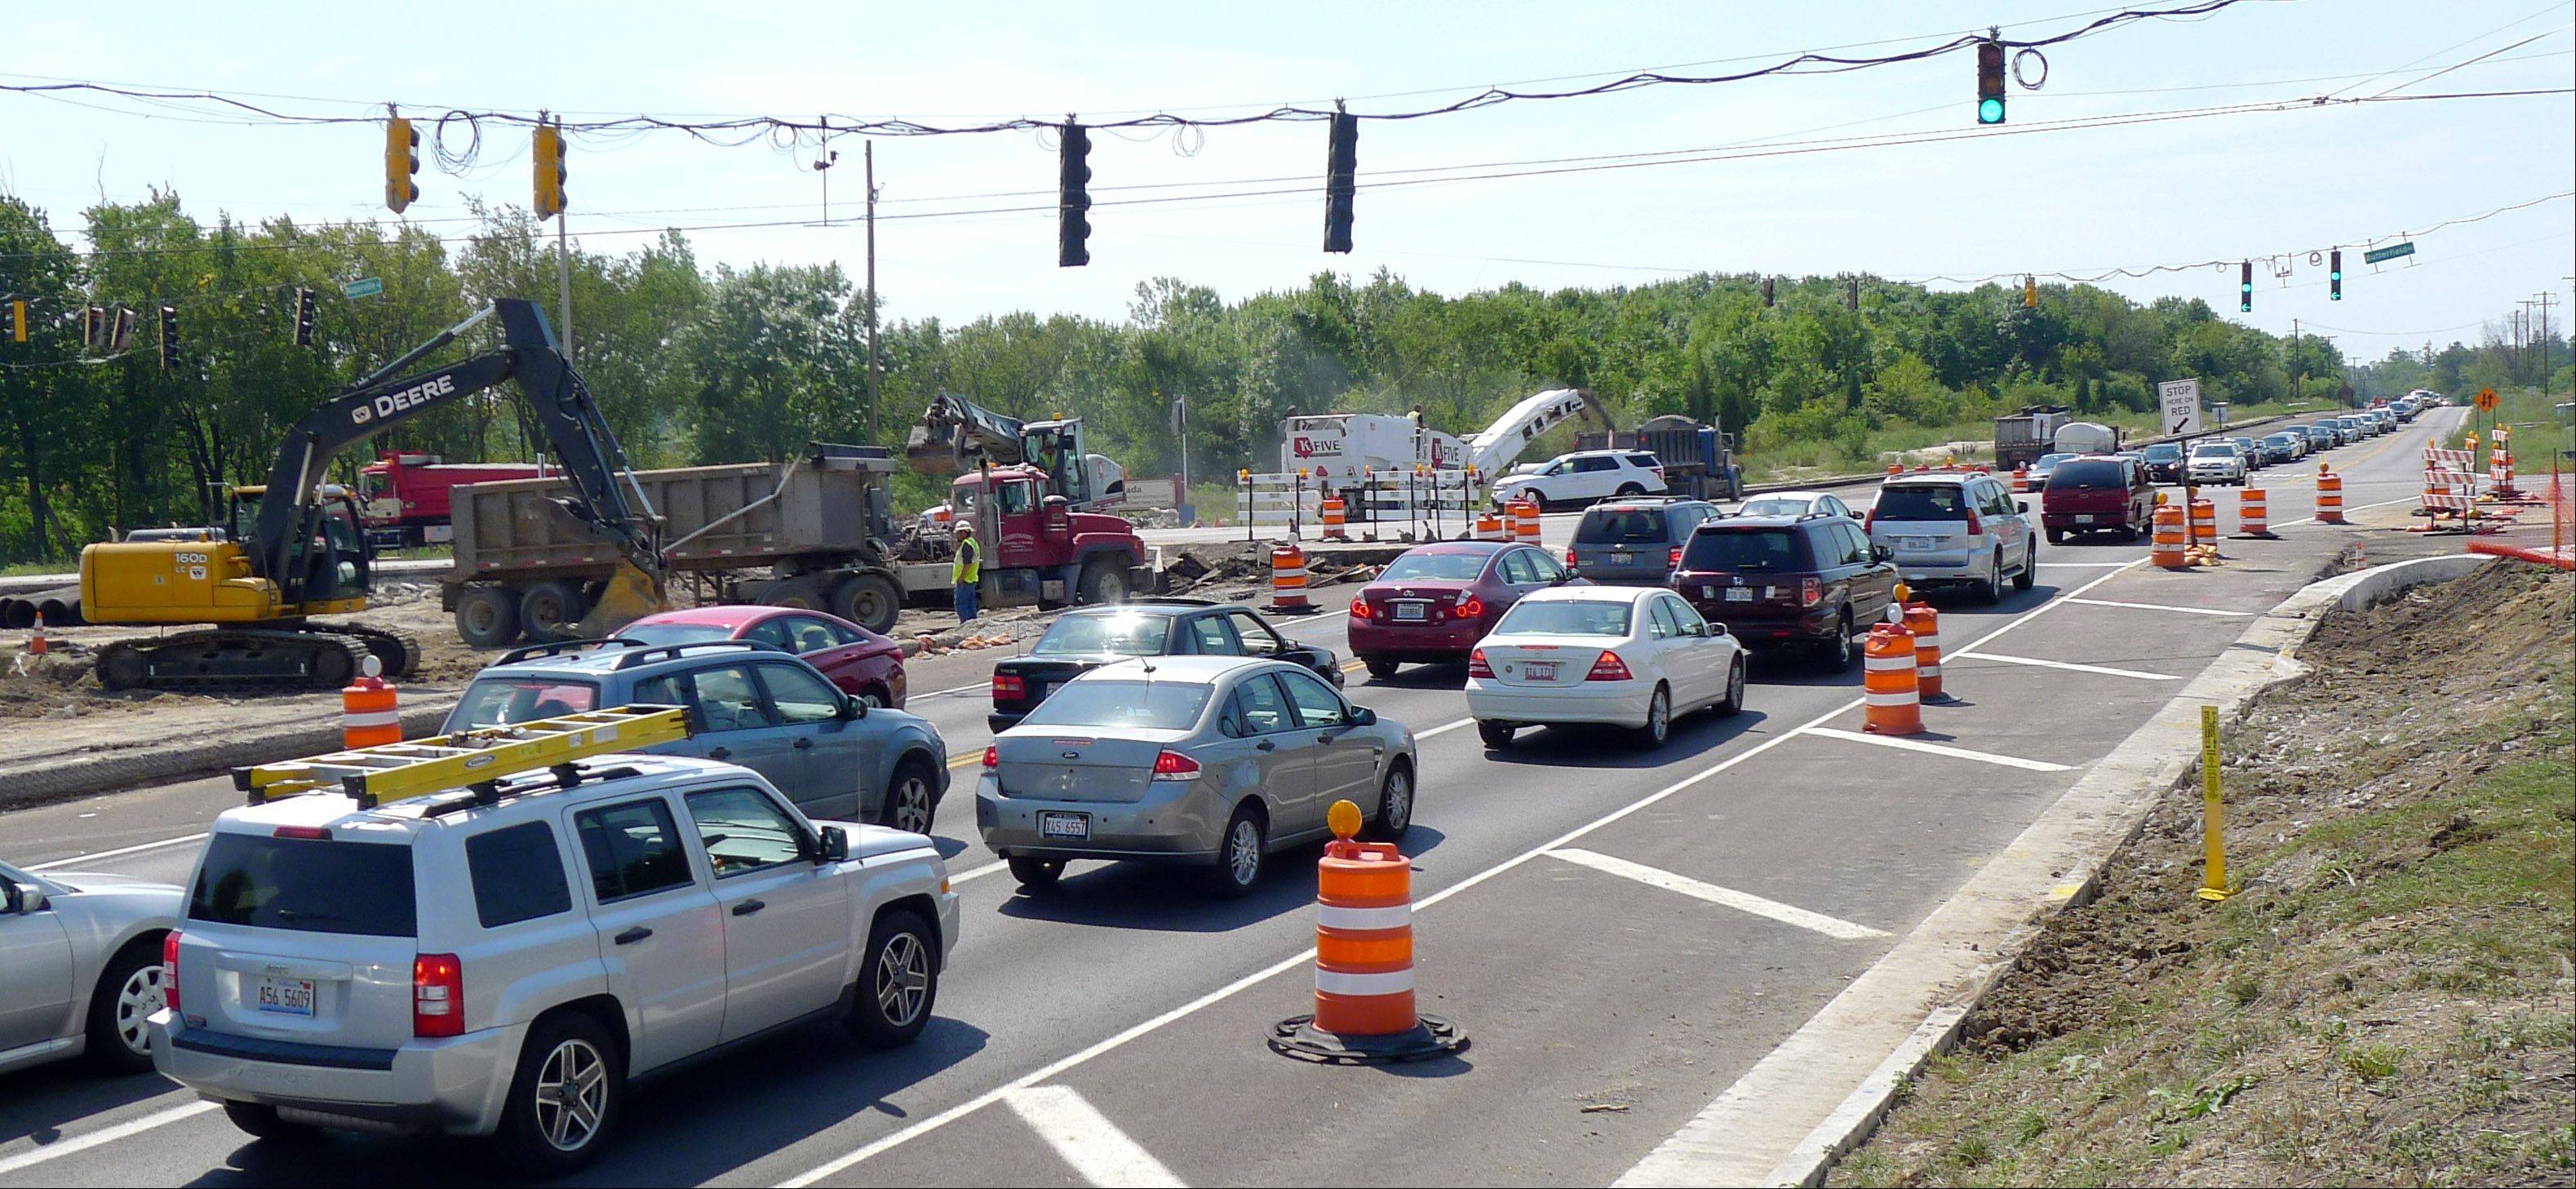 Construction is snarling traffic along portions of Butterfield Road, especially at the intersections of Naperville Road, shown here, and Winfield Road where vehicles heading north and south are being funneled into one lane in each direction.